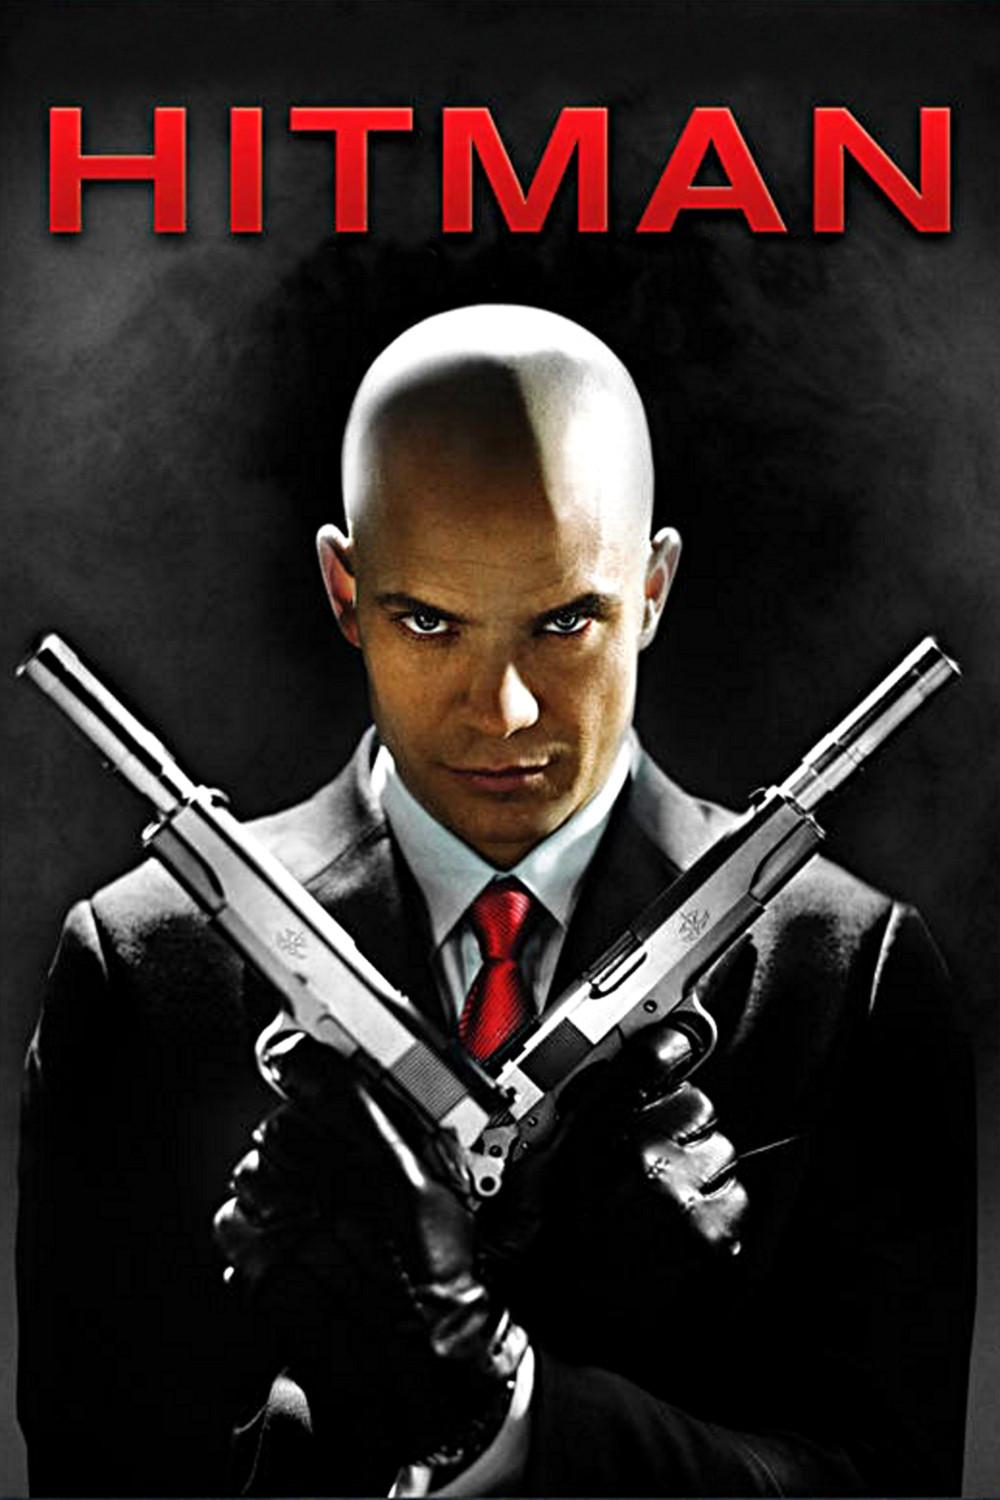 hitman game images